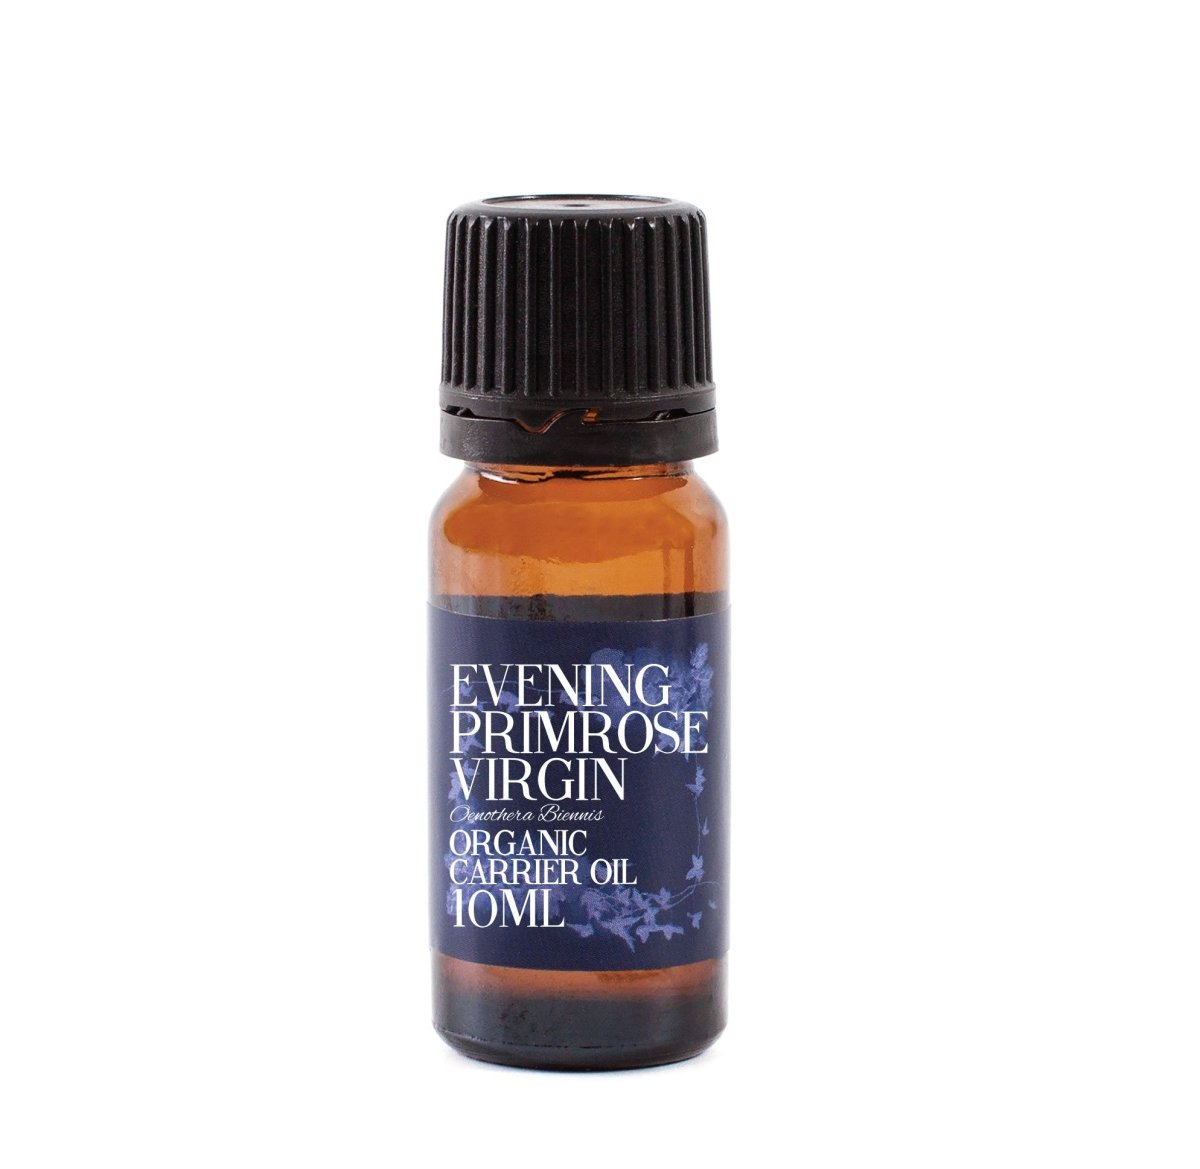 Evening Primrose Virgin Organic Carrier Oil - Mystic Moments UK